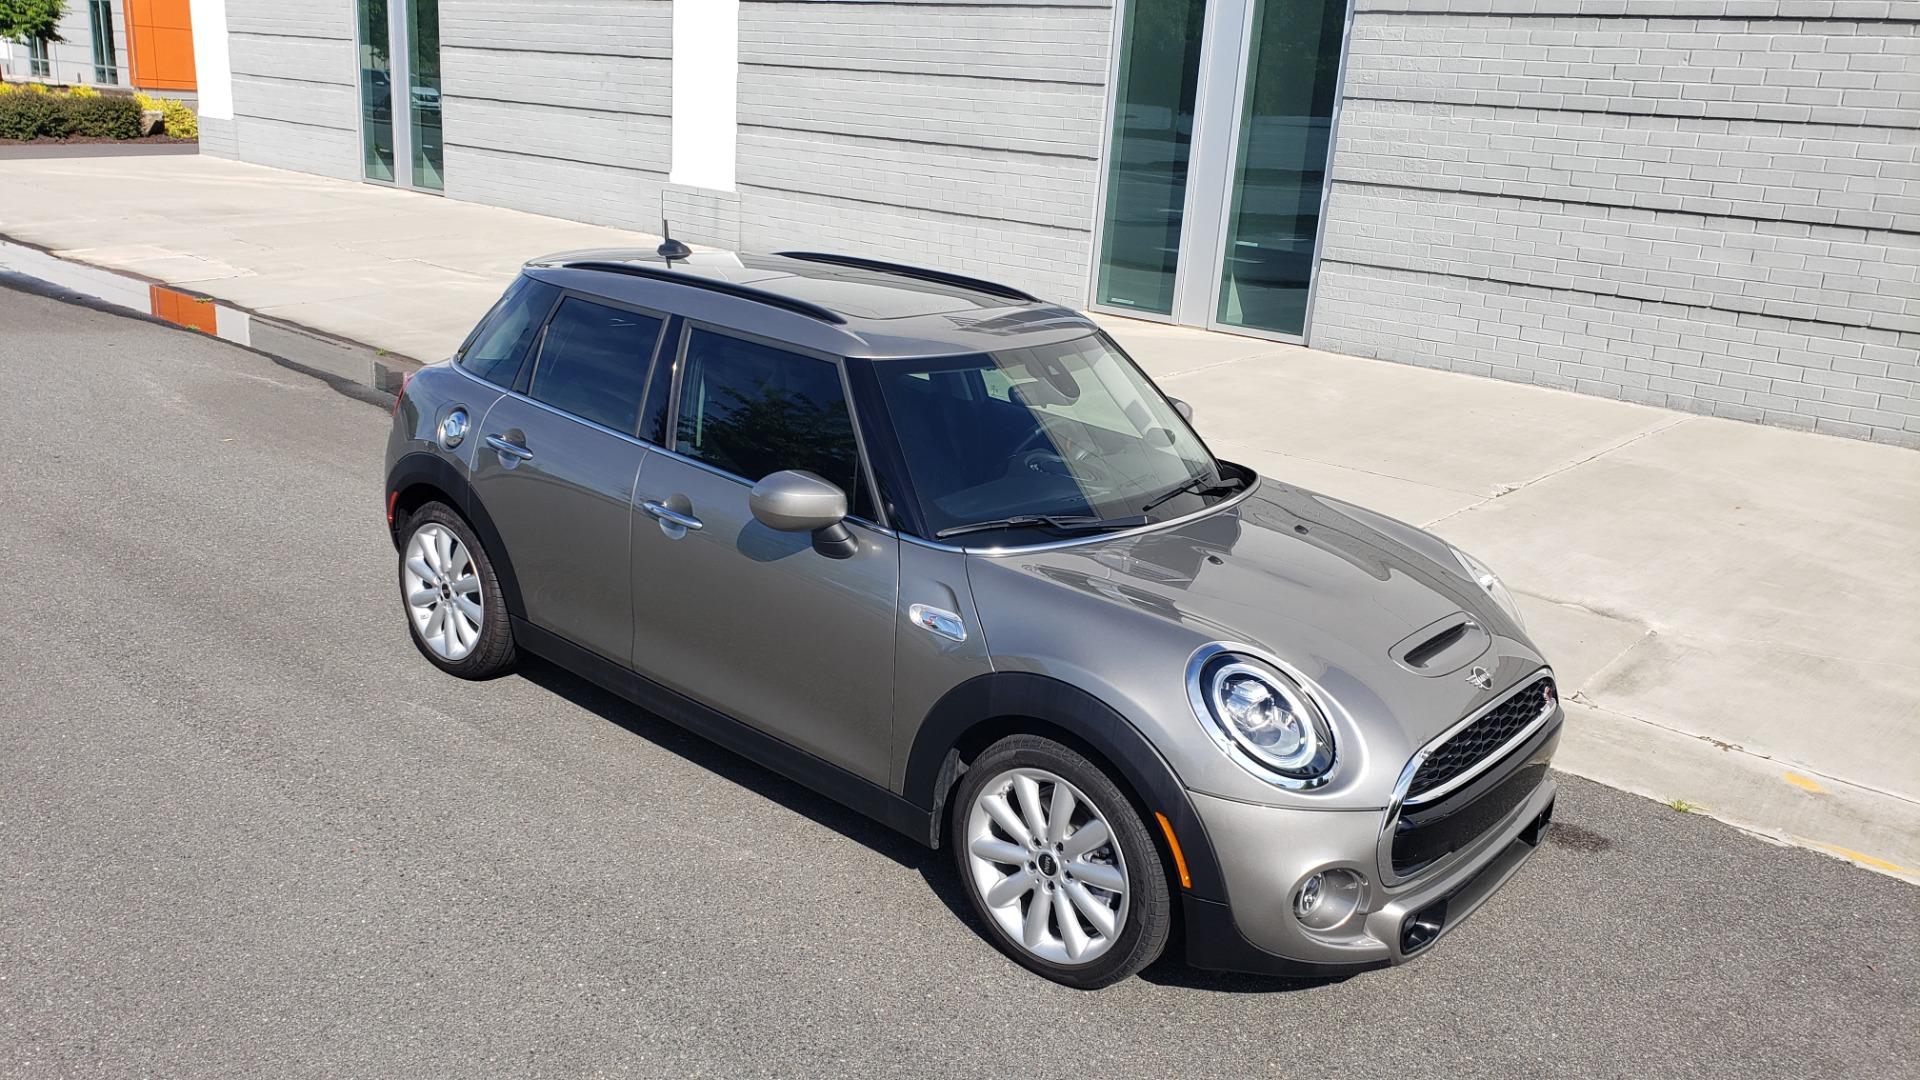 Used 2020 MINI HARDTOP 4 DOOR COOPER S / NAV / SUNROOF / AUTO / H/K SND / REARVIEW for sale $28,495 at Formula Imports in Charlotte NC 28227 10